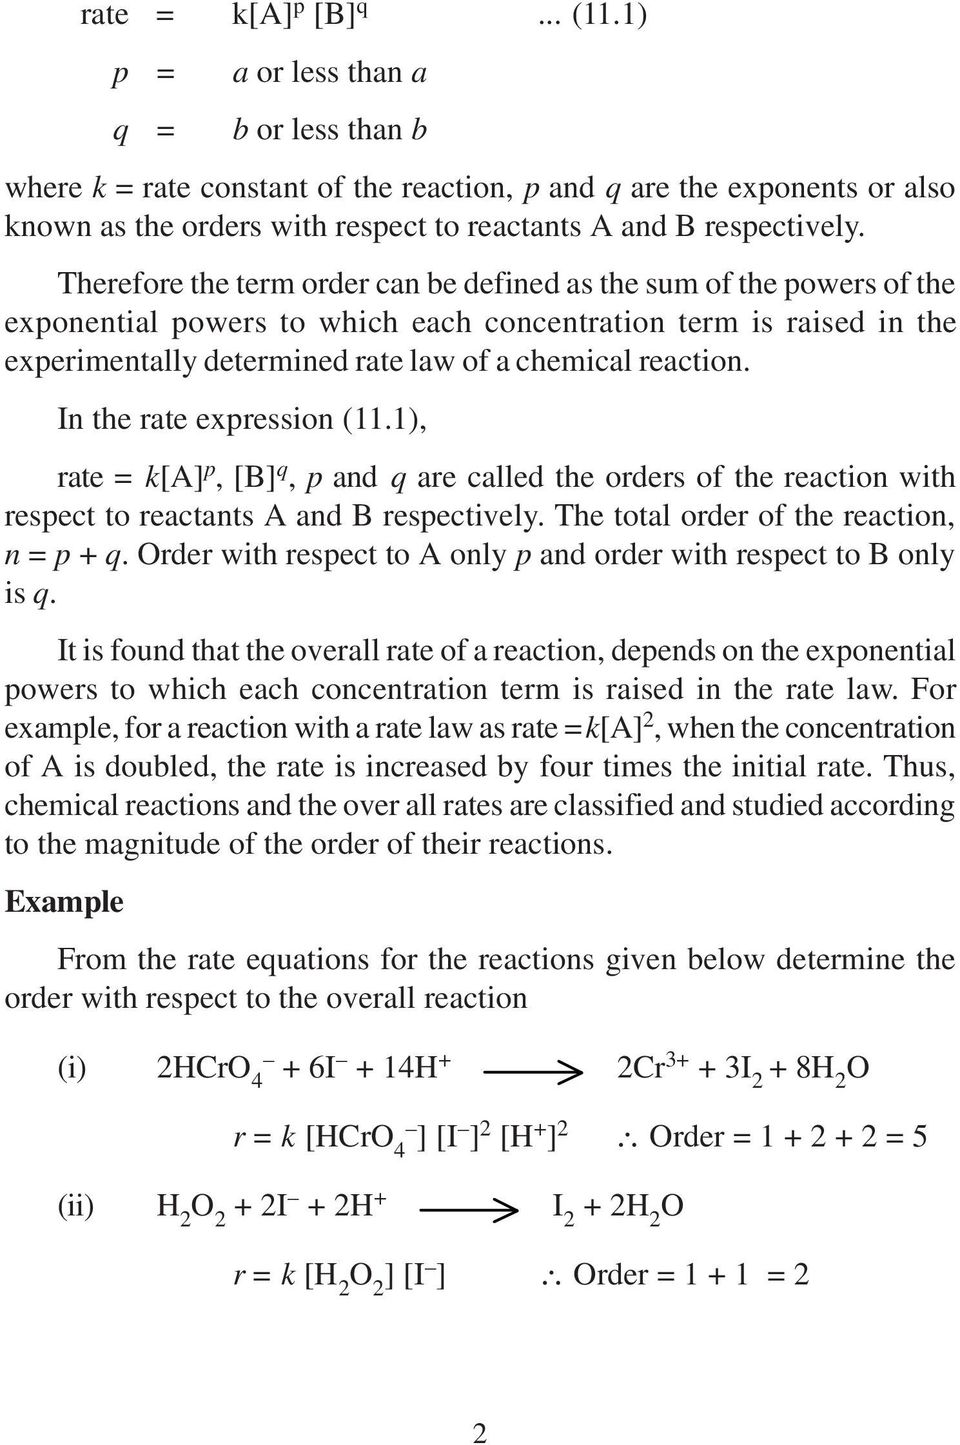 Therefore the term order can be defined as the sum of the powers of the exponential powers to which each concentration term is raised in the experimentally determined rate law of a chemical reaction.